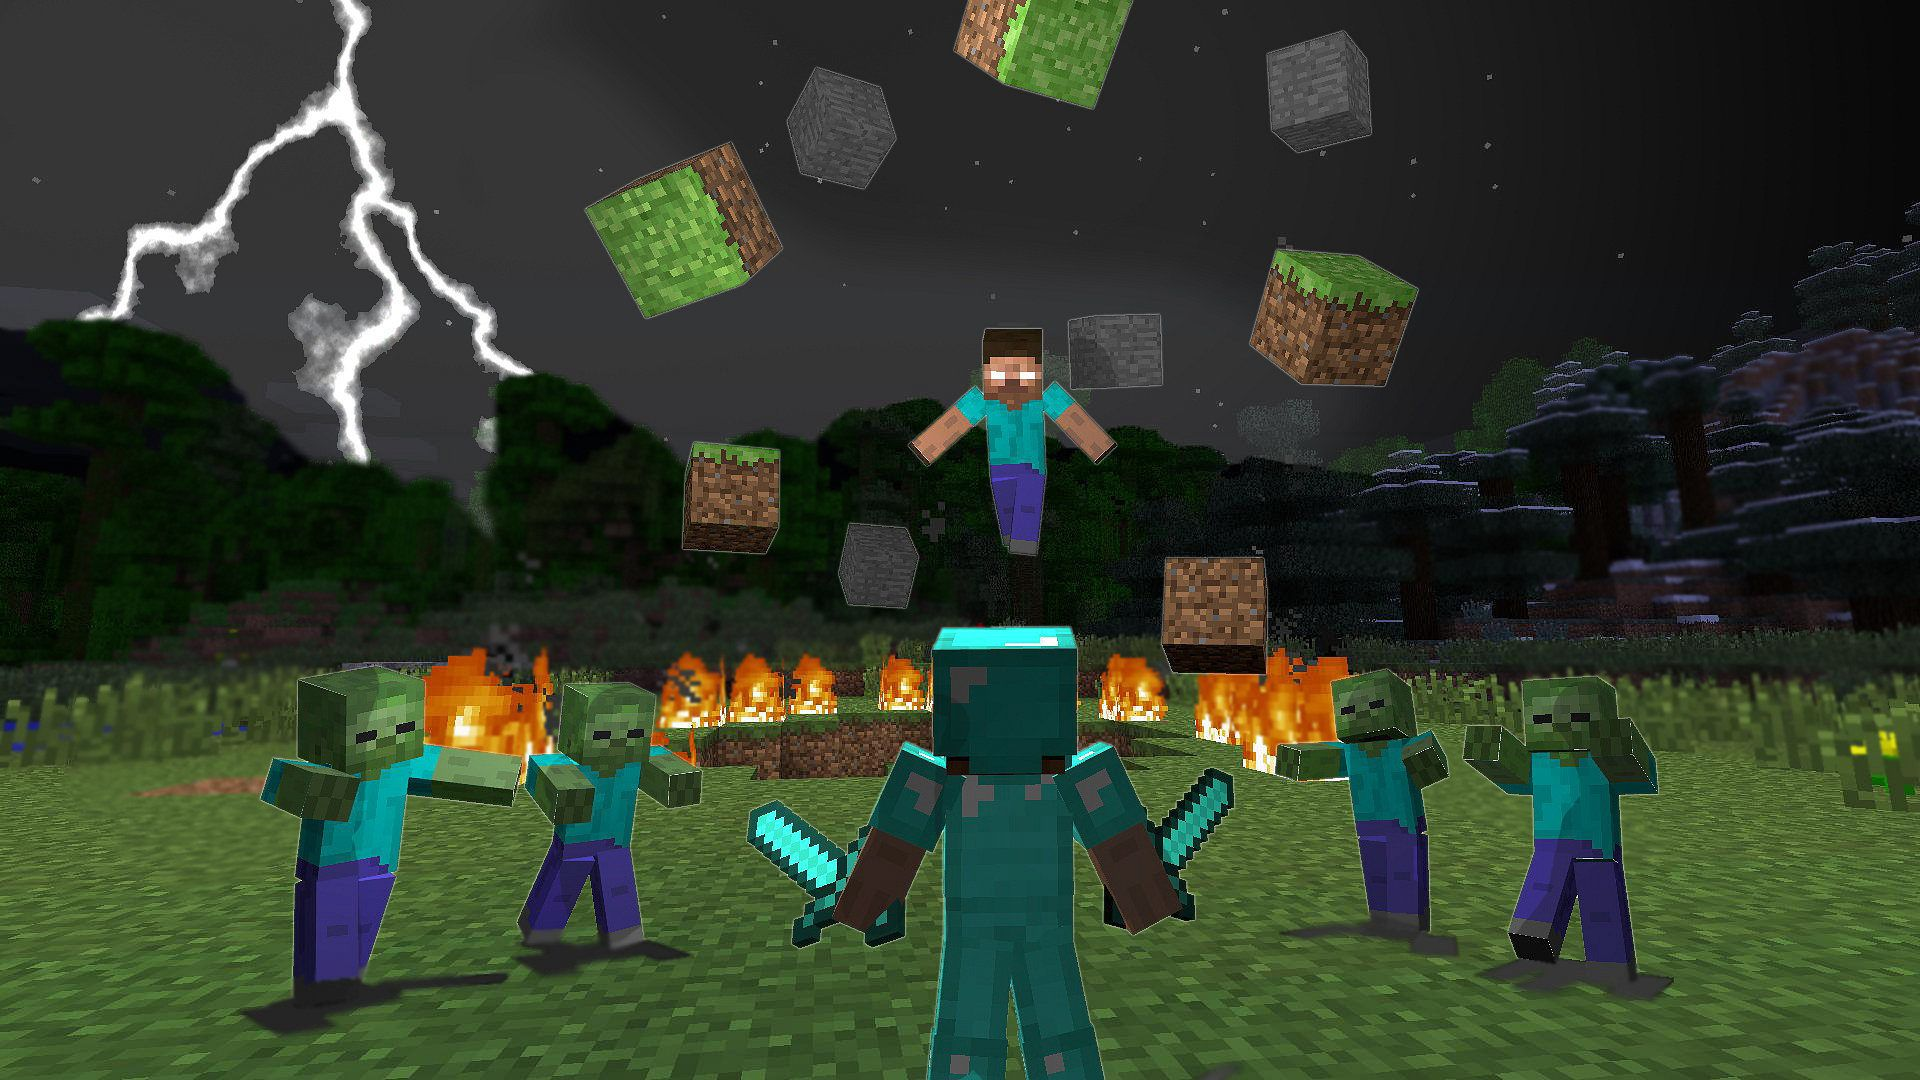 Minecraft Wallpapers Cool Hd Picturez Action WallpaperWallpaper ForMinecraft ImagesMinecraft IdeasMinecraft